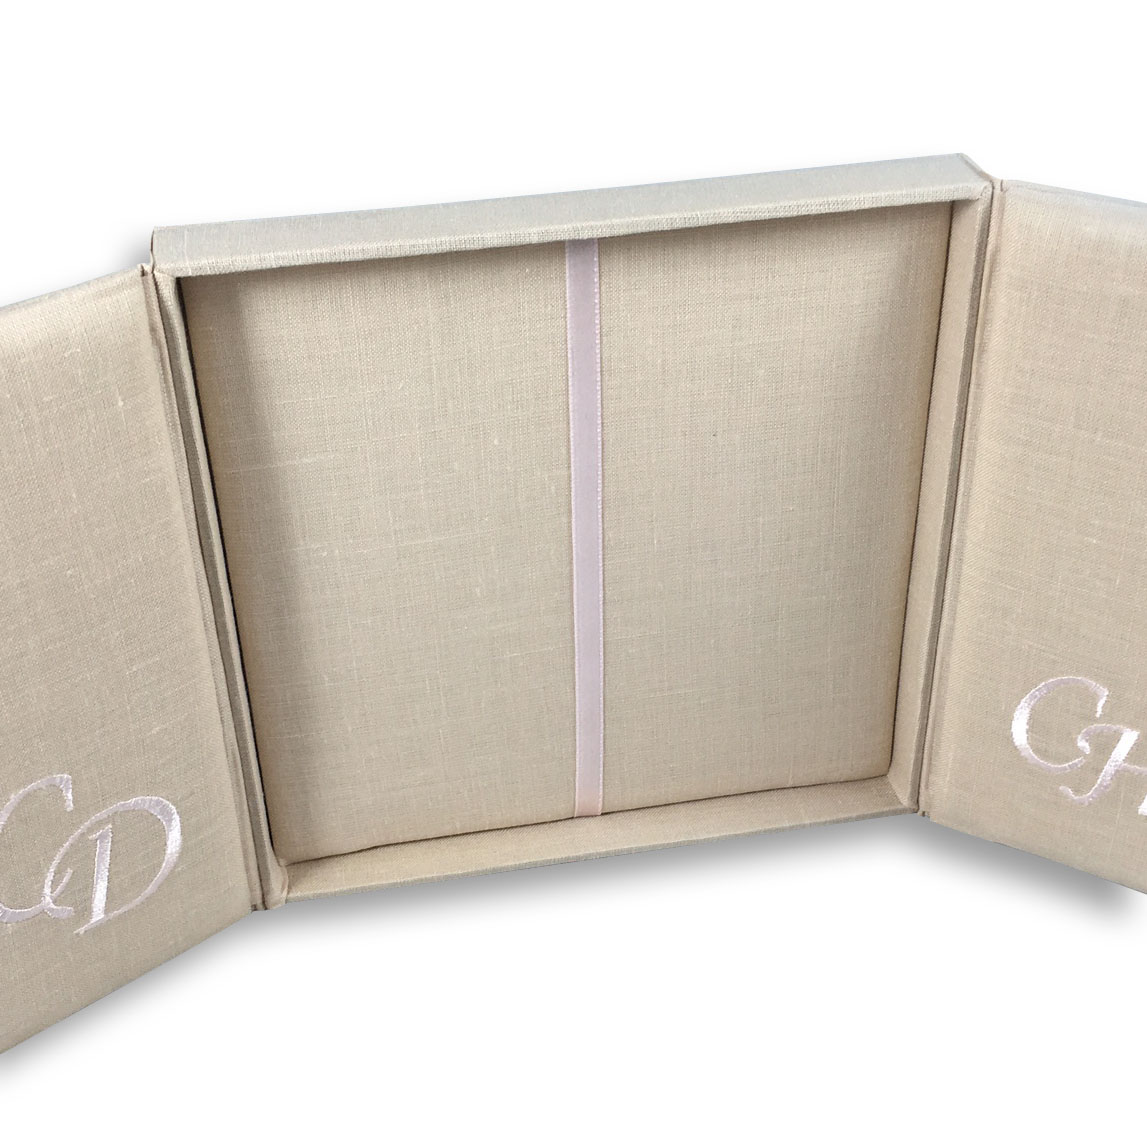 Monogram embroidered linen box